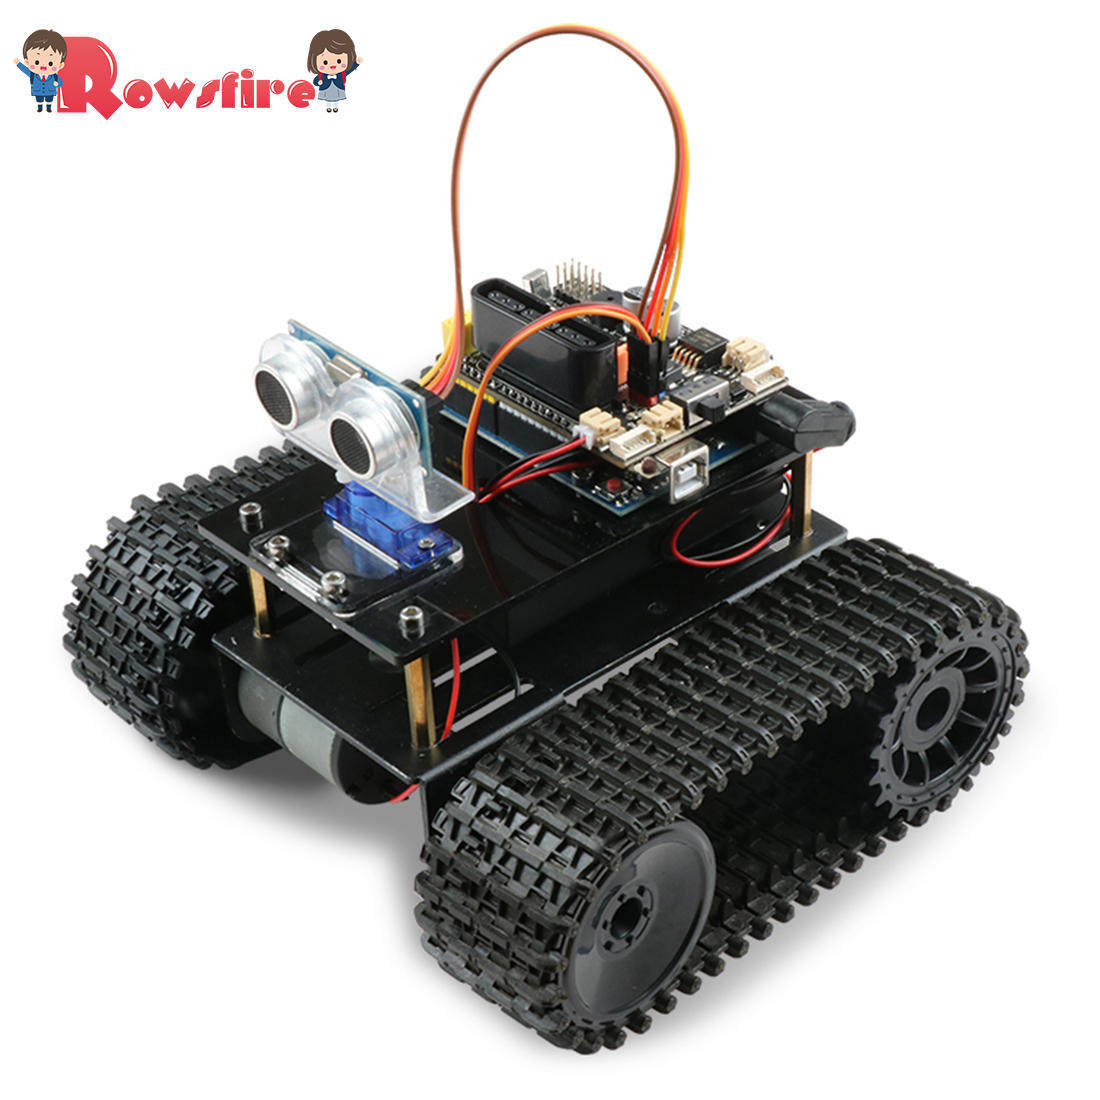 Hih Recommend 1 Set DIY Obstacle Avoidance Smart Programmable Robot Tank Educational Learning Kit  Toys Games